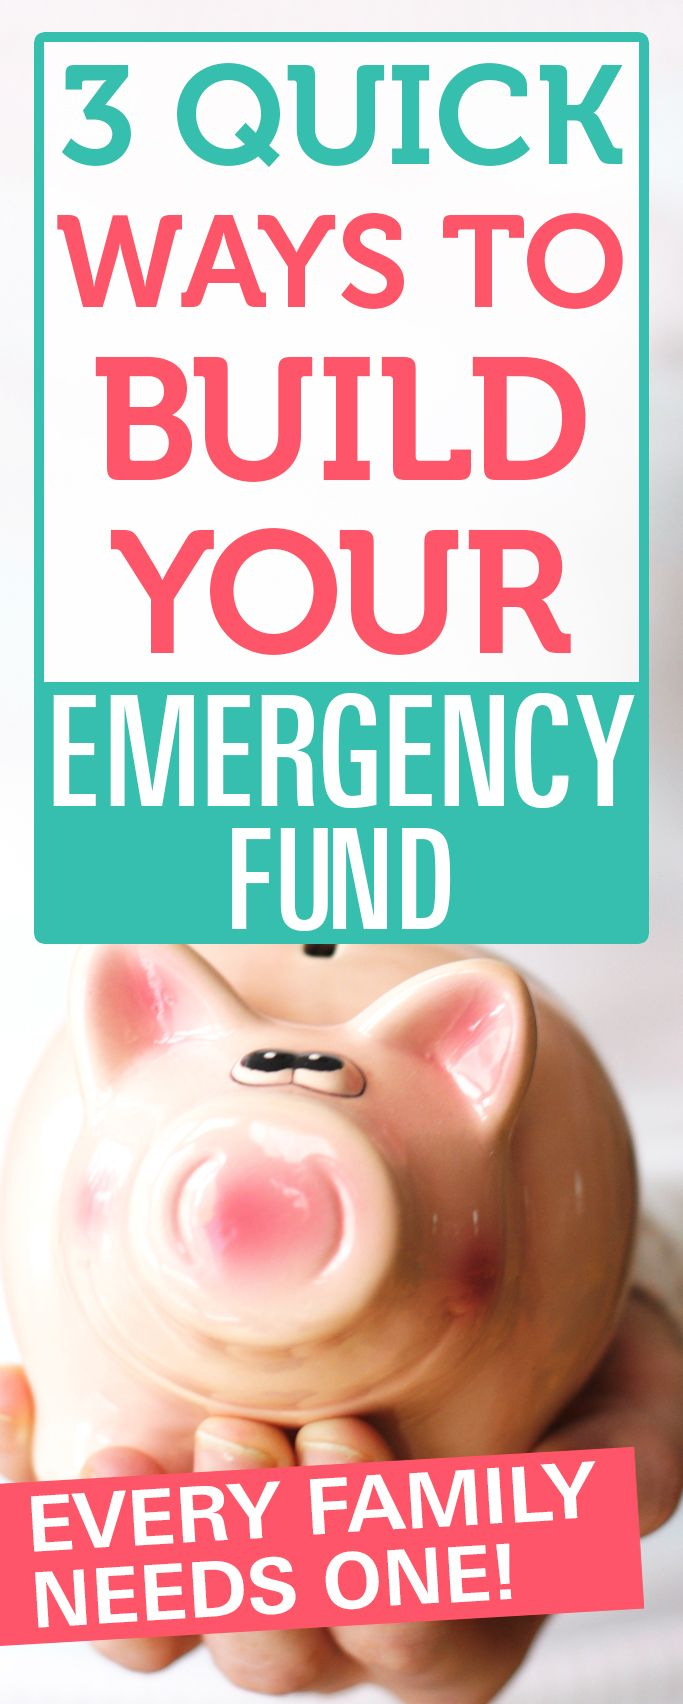 Make sure to build your emergency fund. Unexpected emergency expenses happen to everyone and it's good to be prepared for these situations. #savingmoney #emergencyfunds #diy